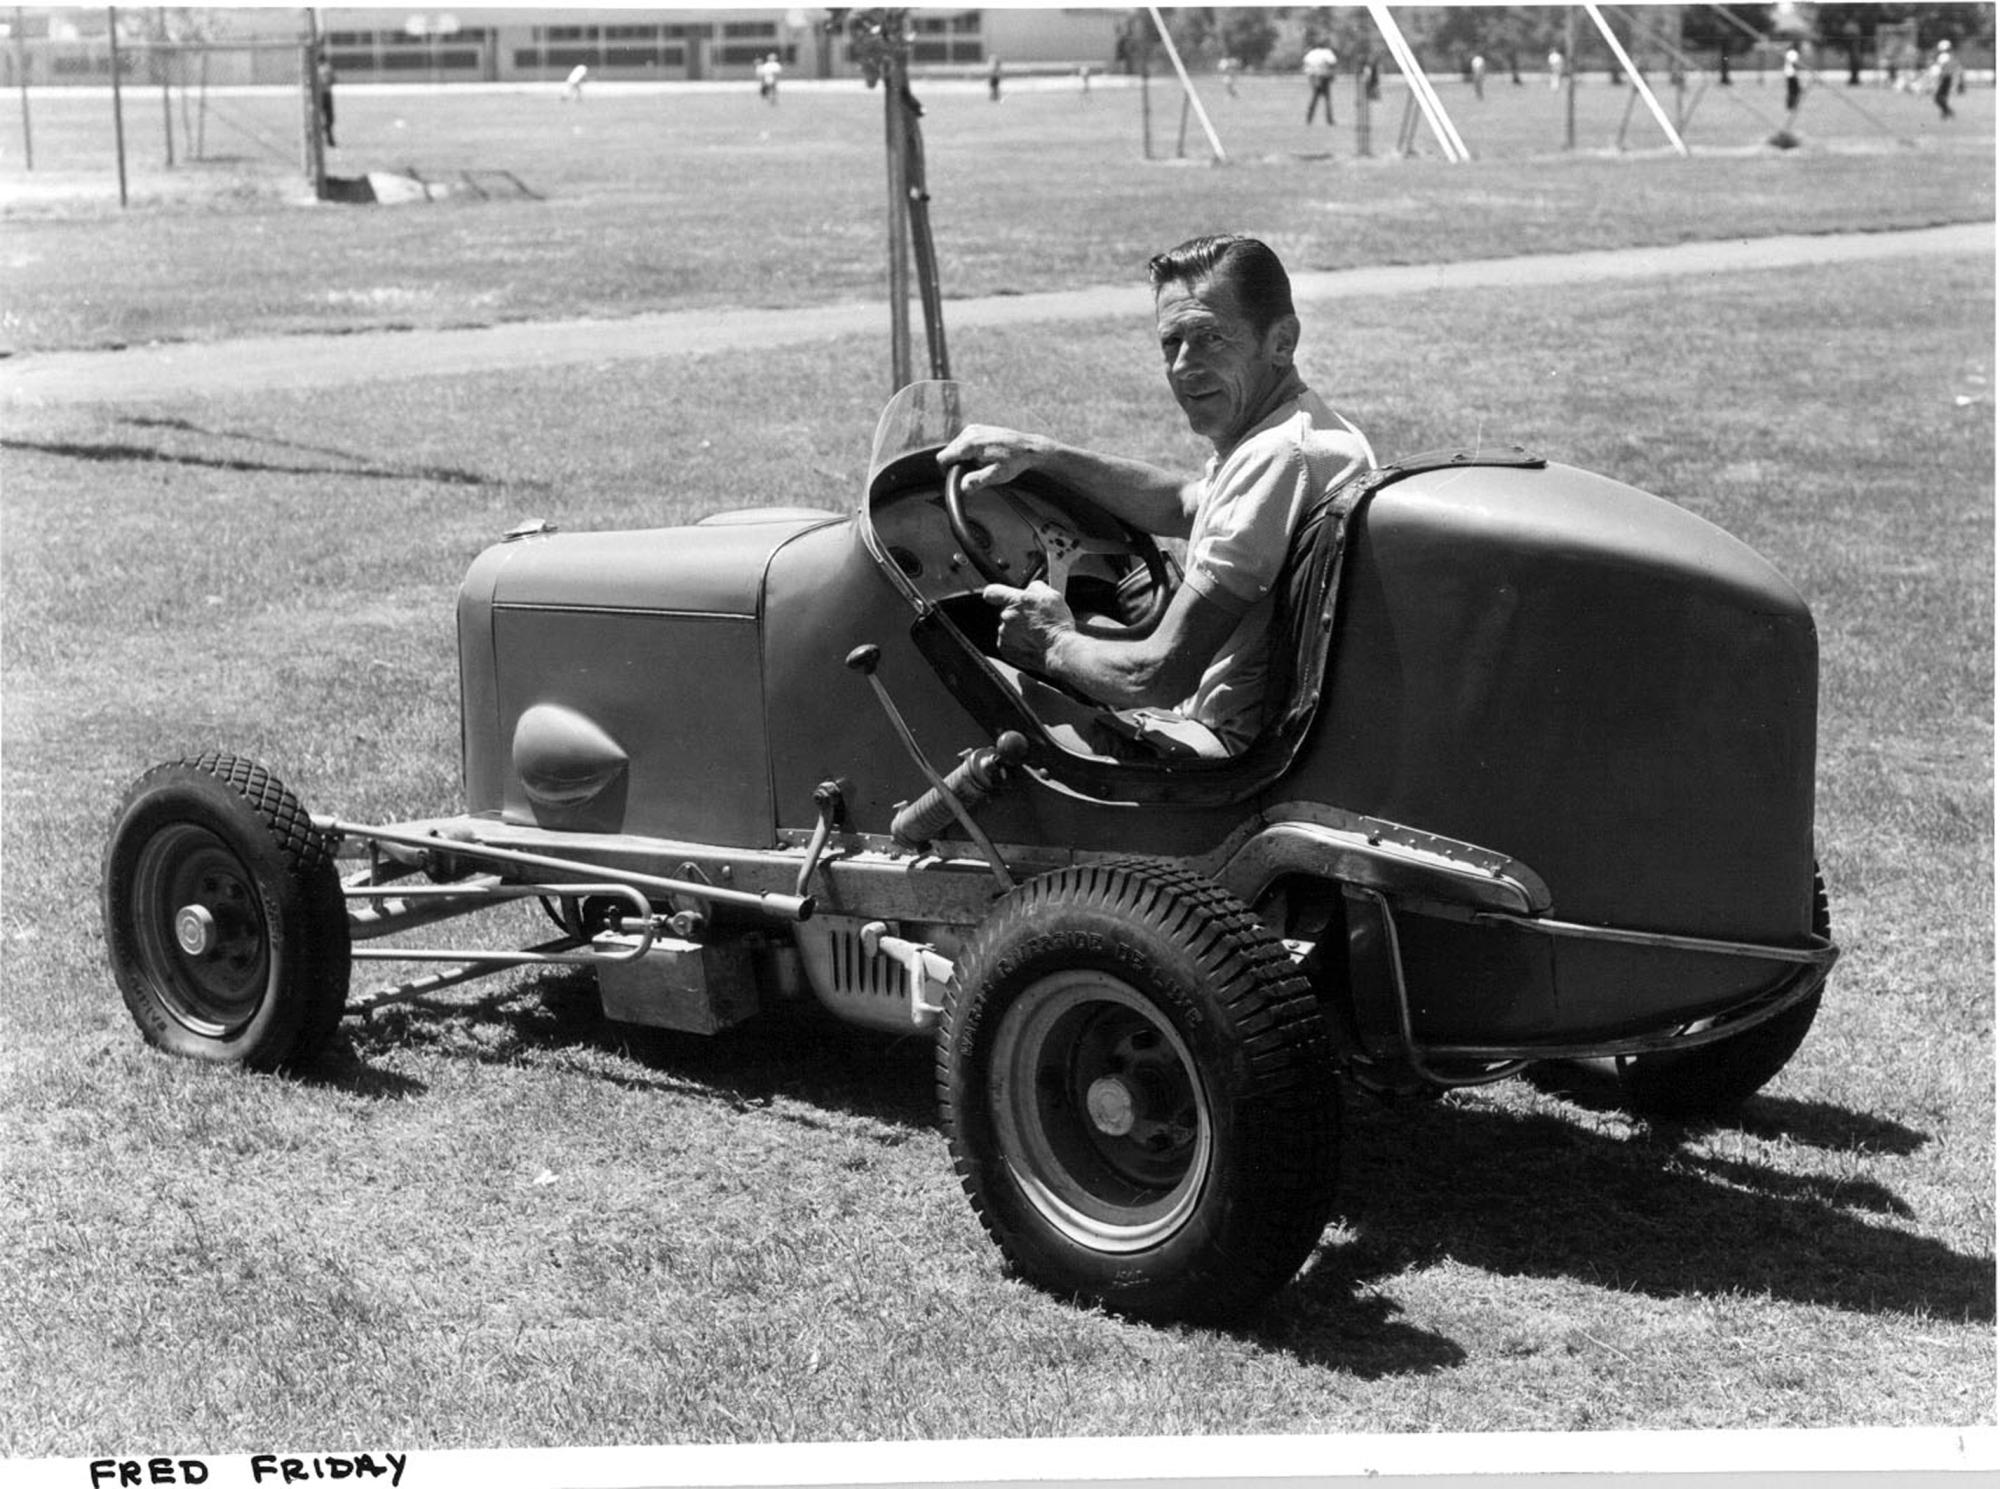 MG0053_Fred_Friday_in_the_Walsh_vintage_midget_HR.jpg